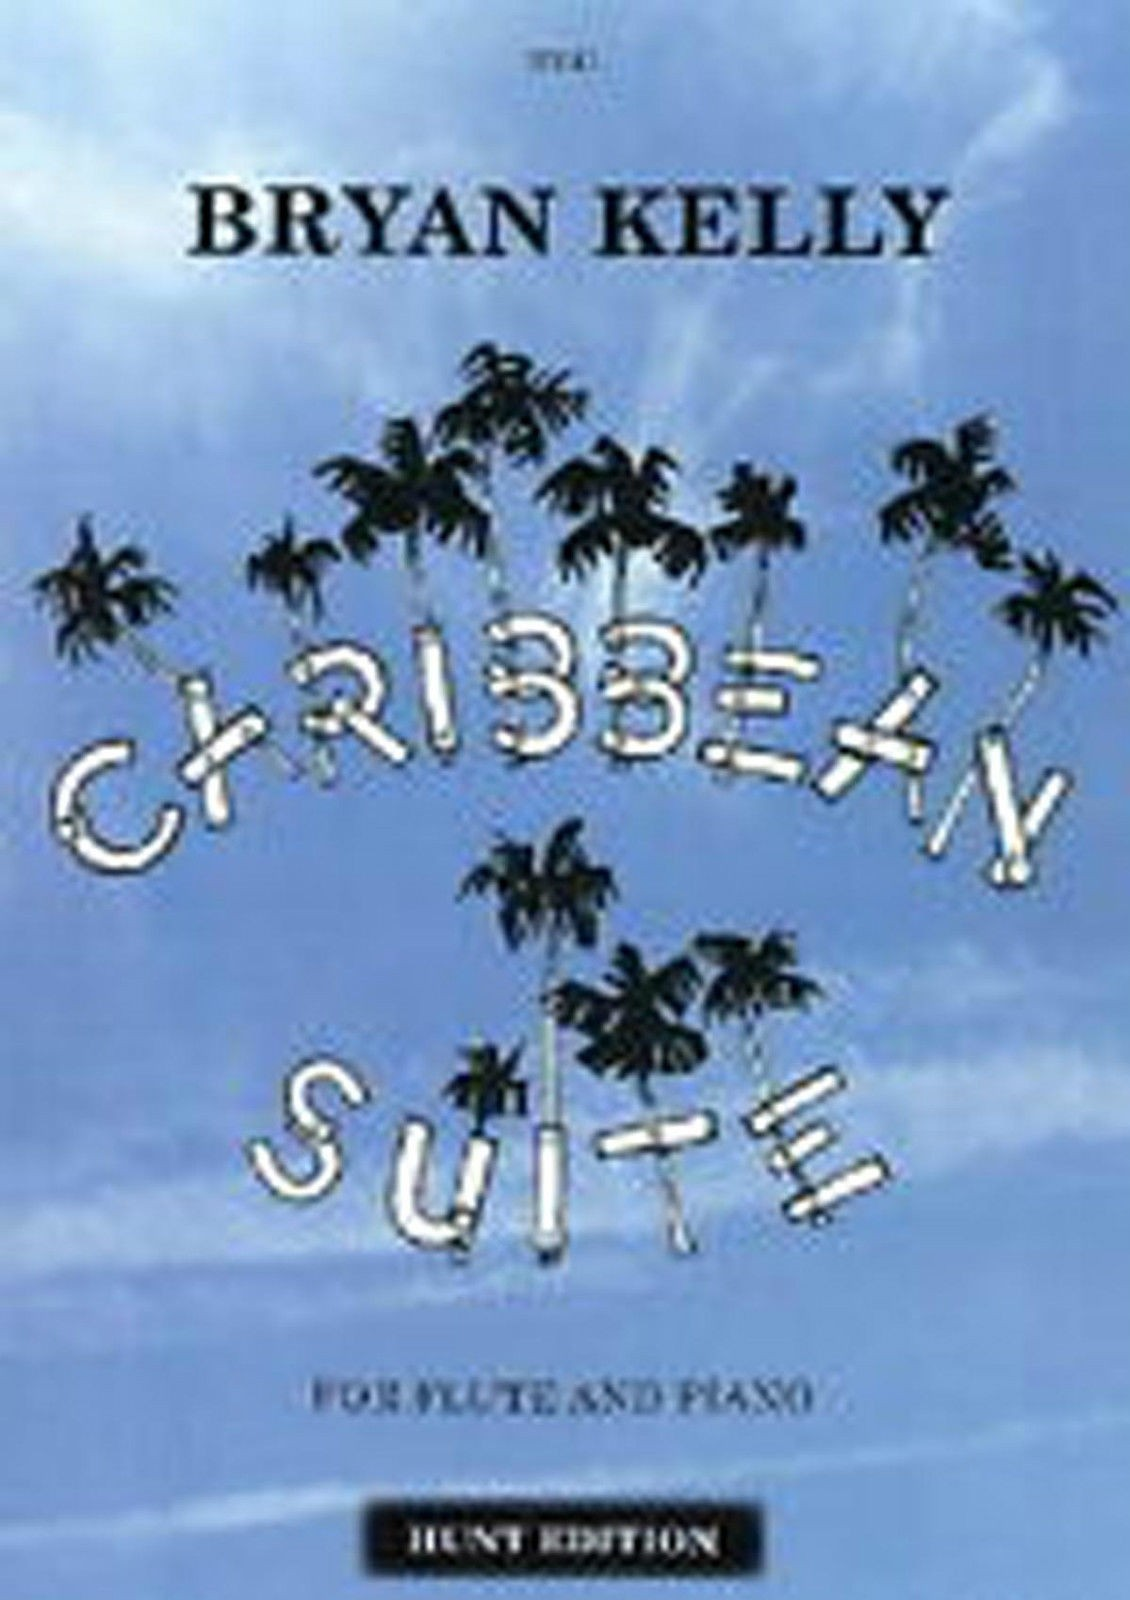 Bryan Kelly Caribbean Suite for Flute Piano Sheet Music ABRSM Exam Book B25 S74